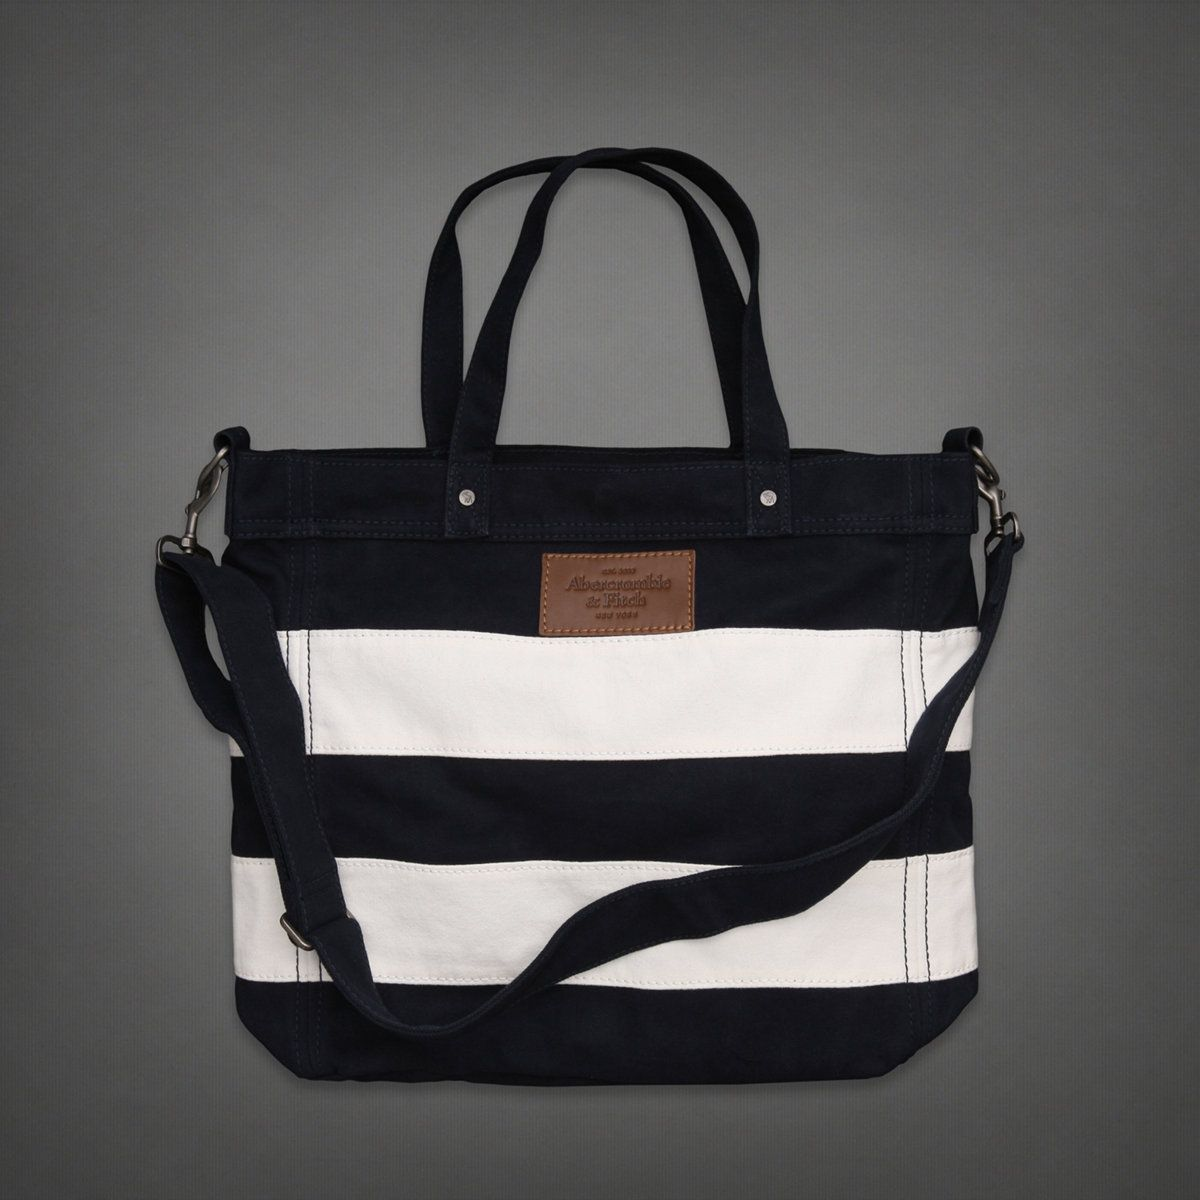 Classic Tote Bag | Abercrombie.com | Check out our Pin To Win Challenge at http://on.fb.me/UfLuQd